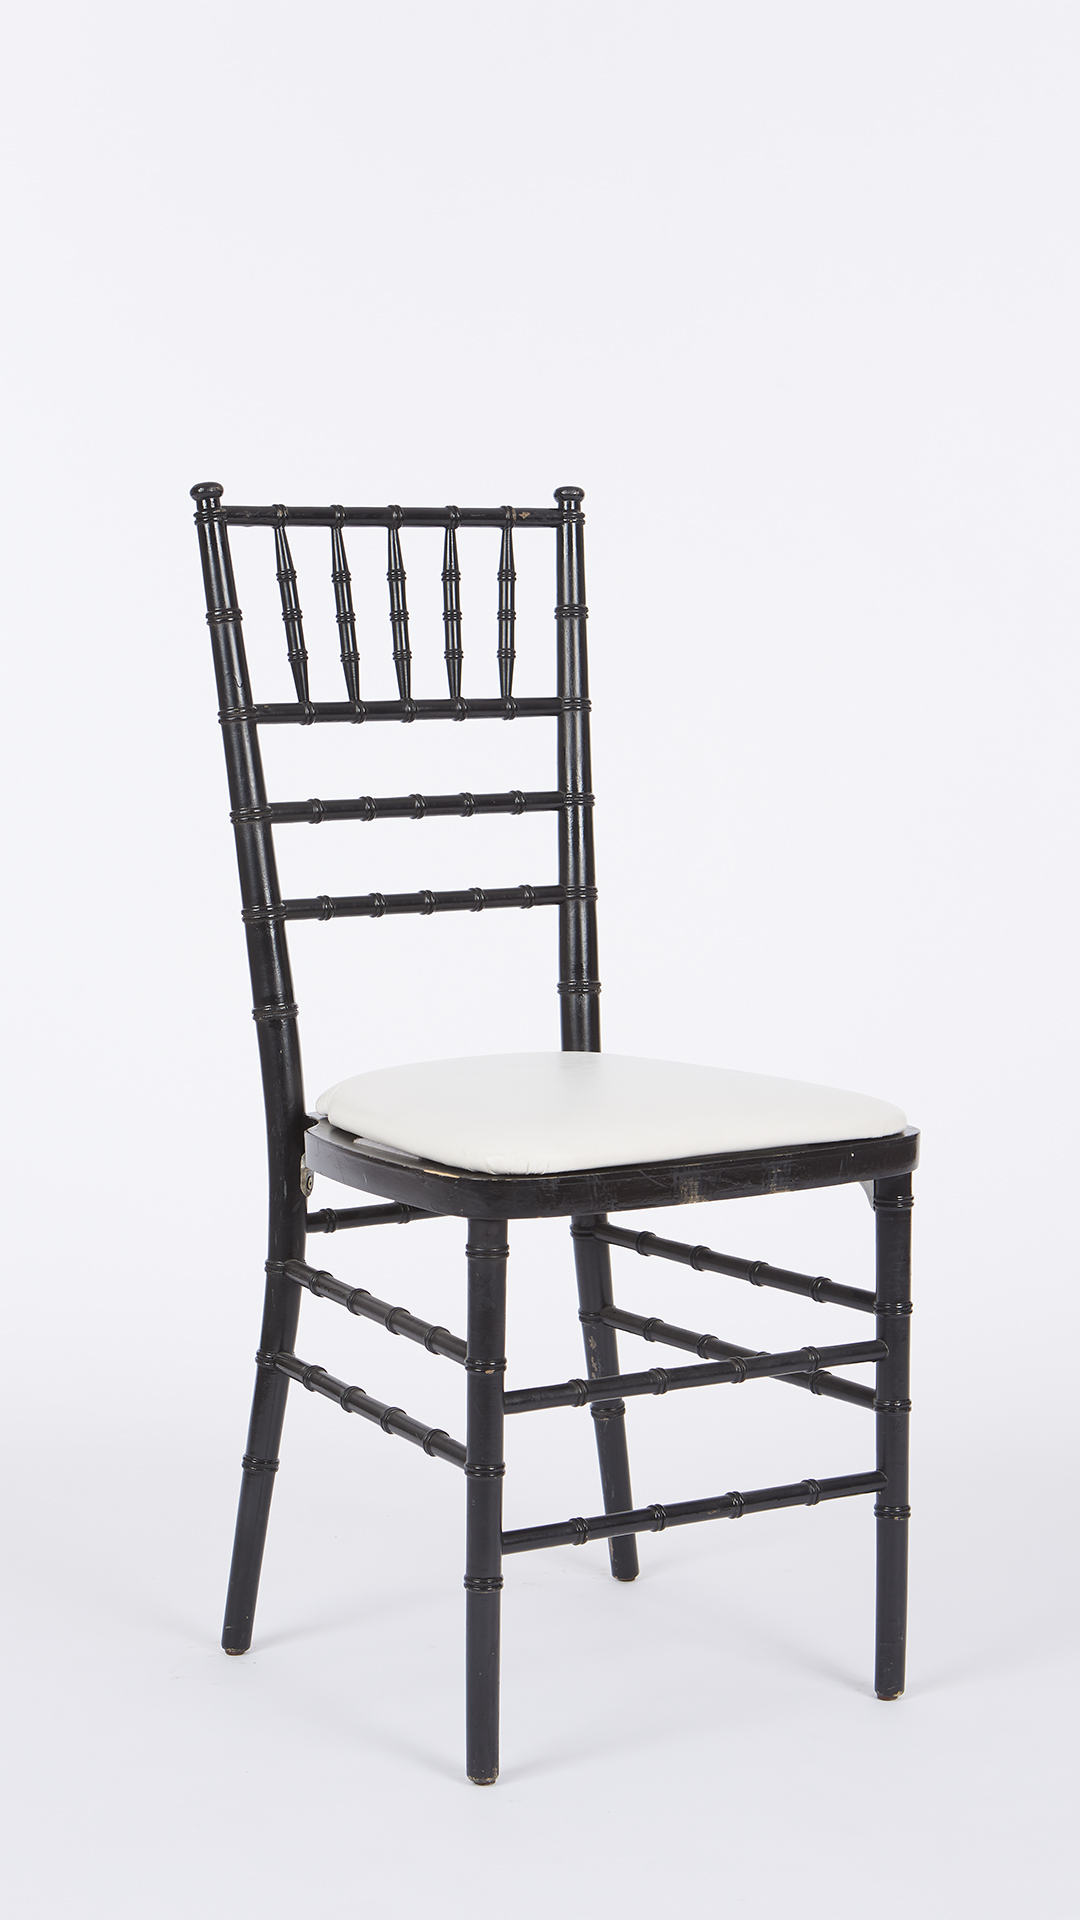 Mahogany Chiavari Chair Mahogany Chiavari Chair Toronto Only Chair Decor